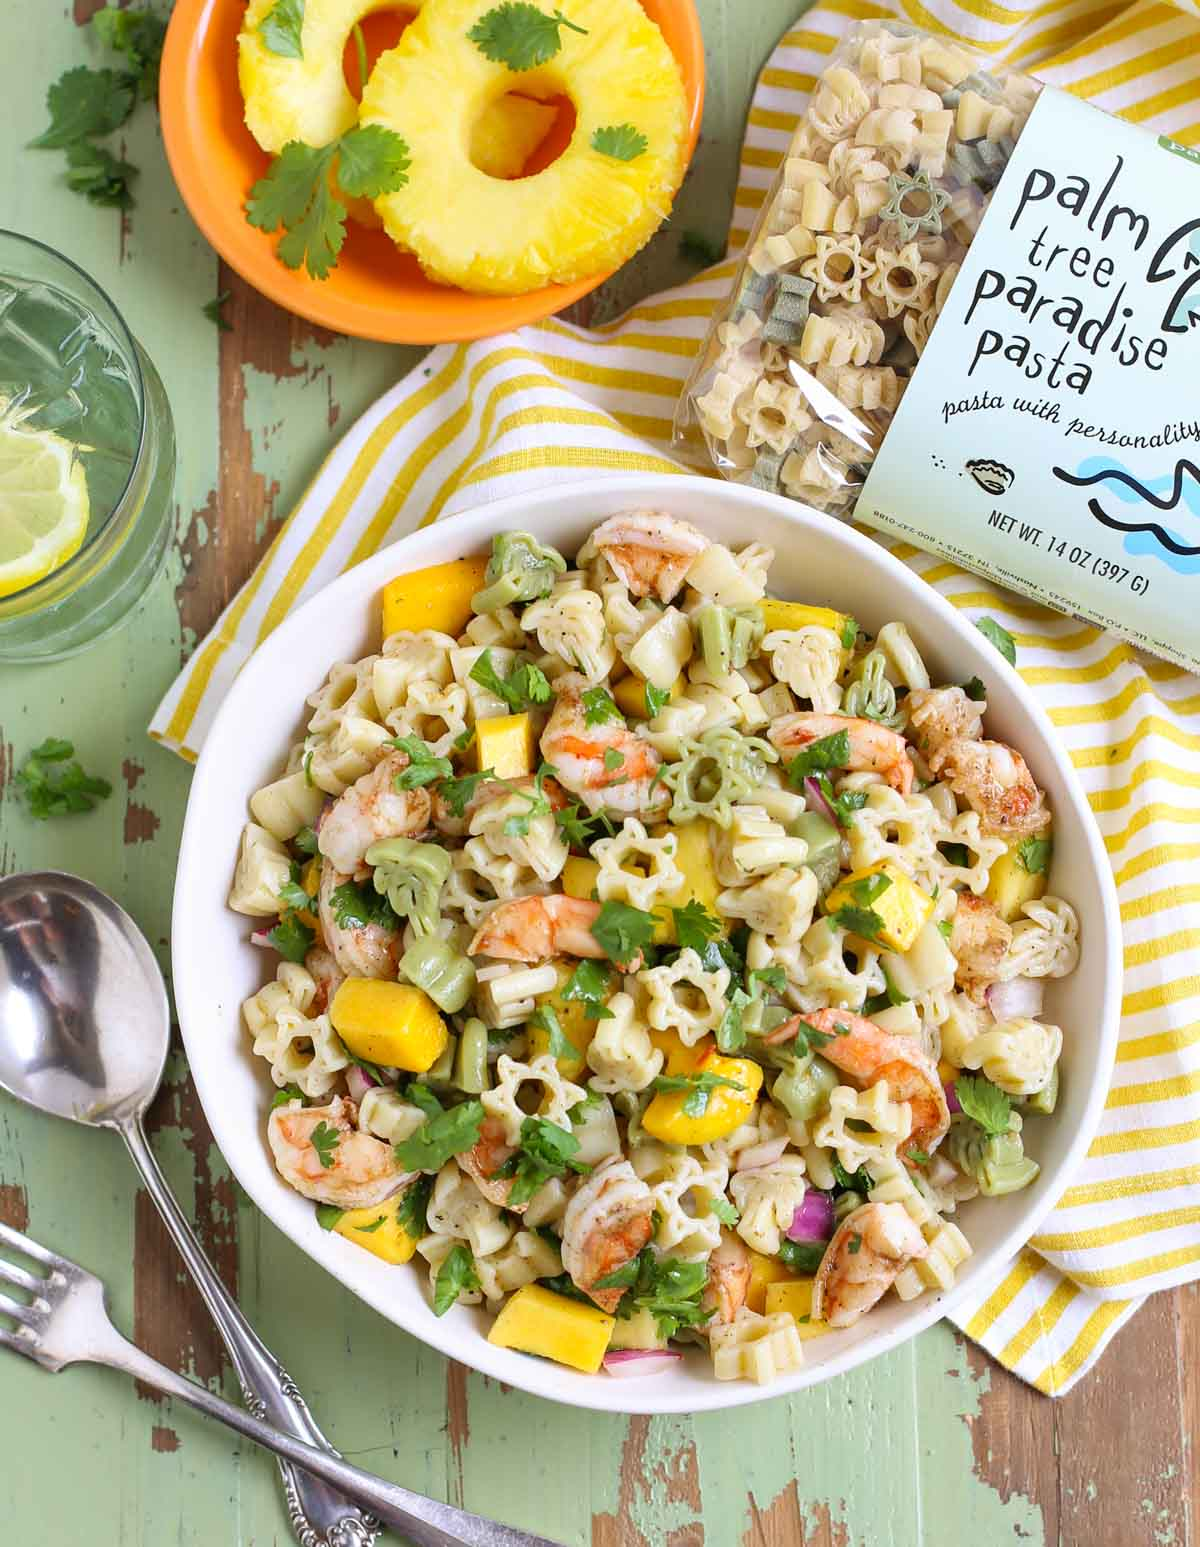 Caribbean Pasta Salad with image of Palm Tree Pasta Bag